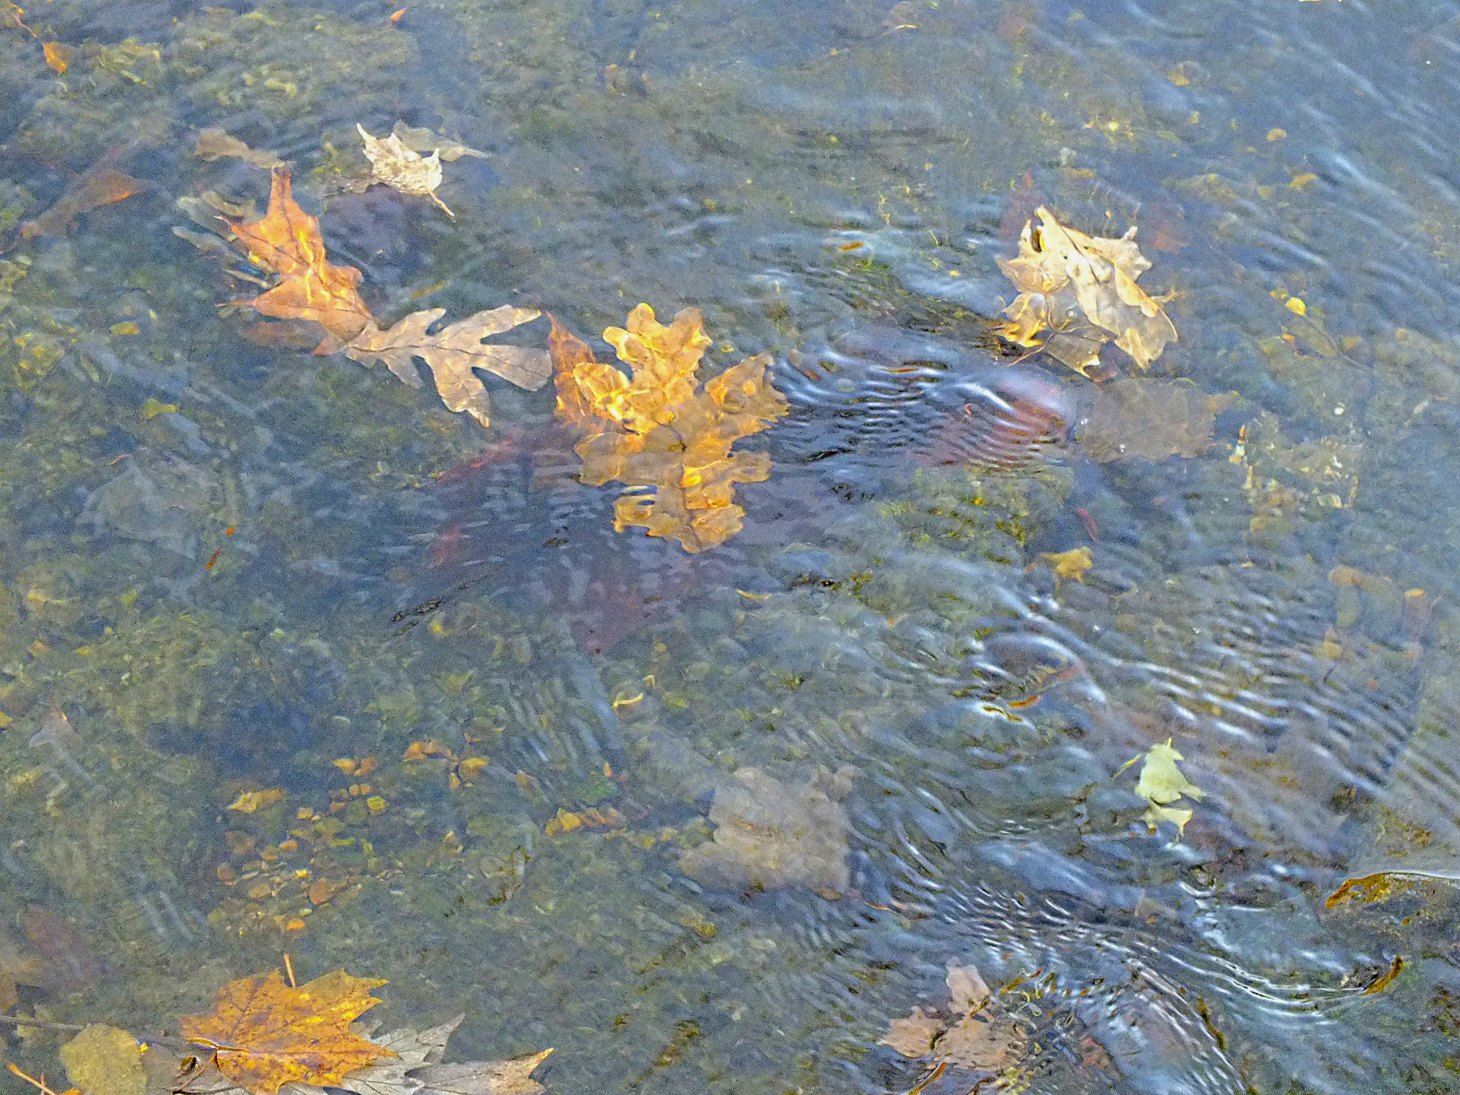 Fall Creek Leaves.  Photo by Thomas Peace 2014